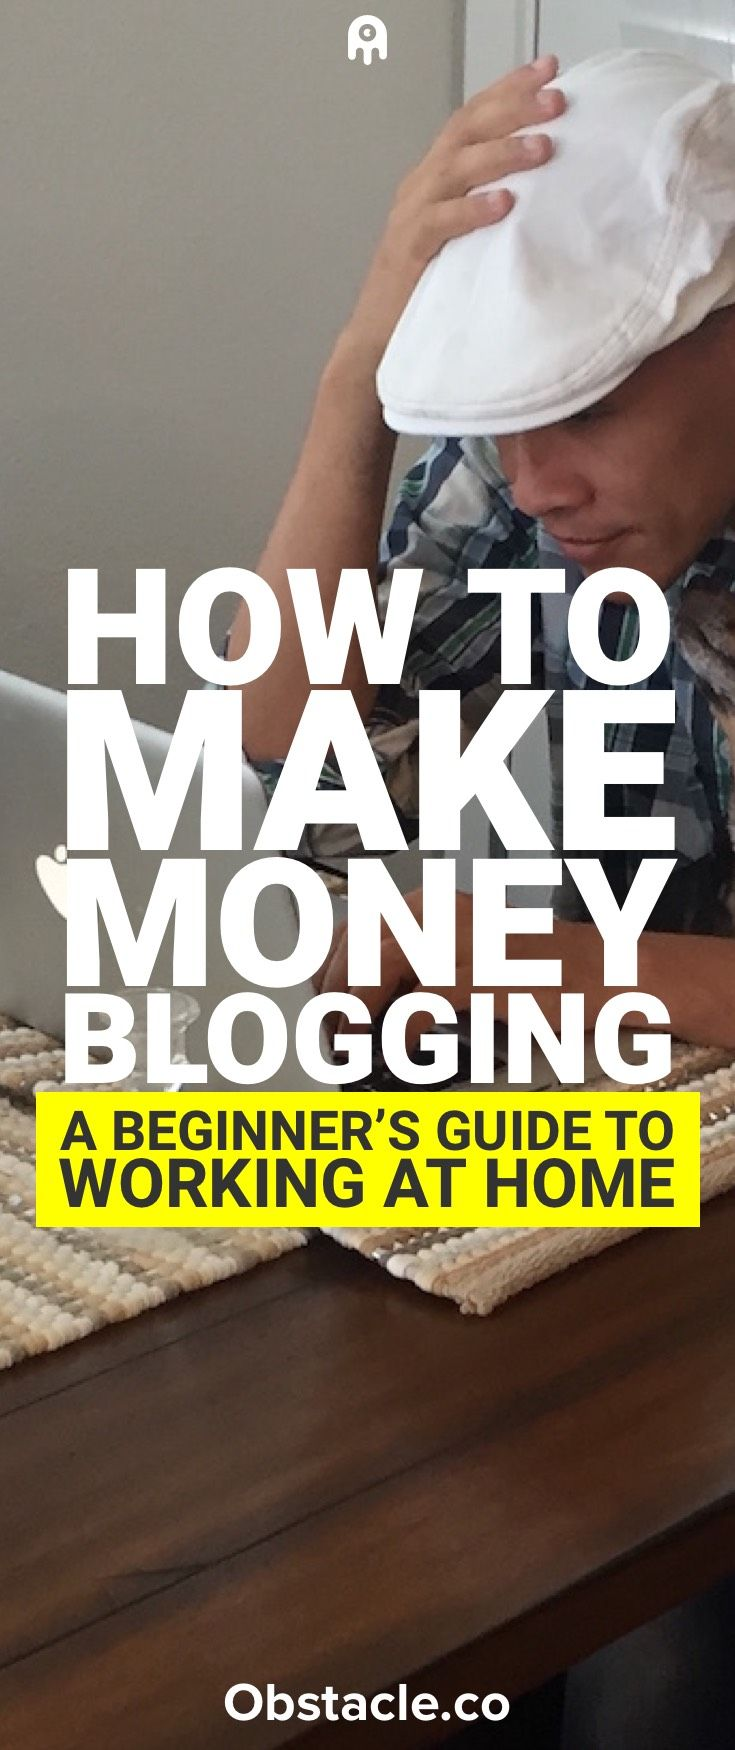 Want to learn how to make money blogging? Here is how to start a blog to make money blogging allowing you to work at home and be free.